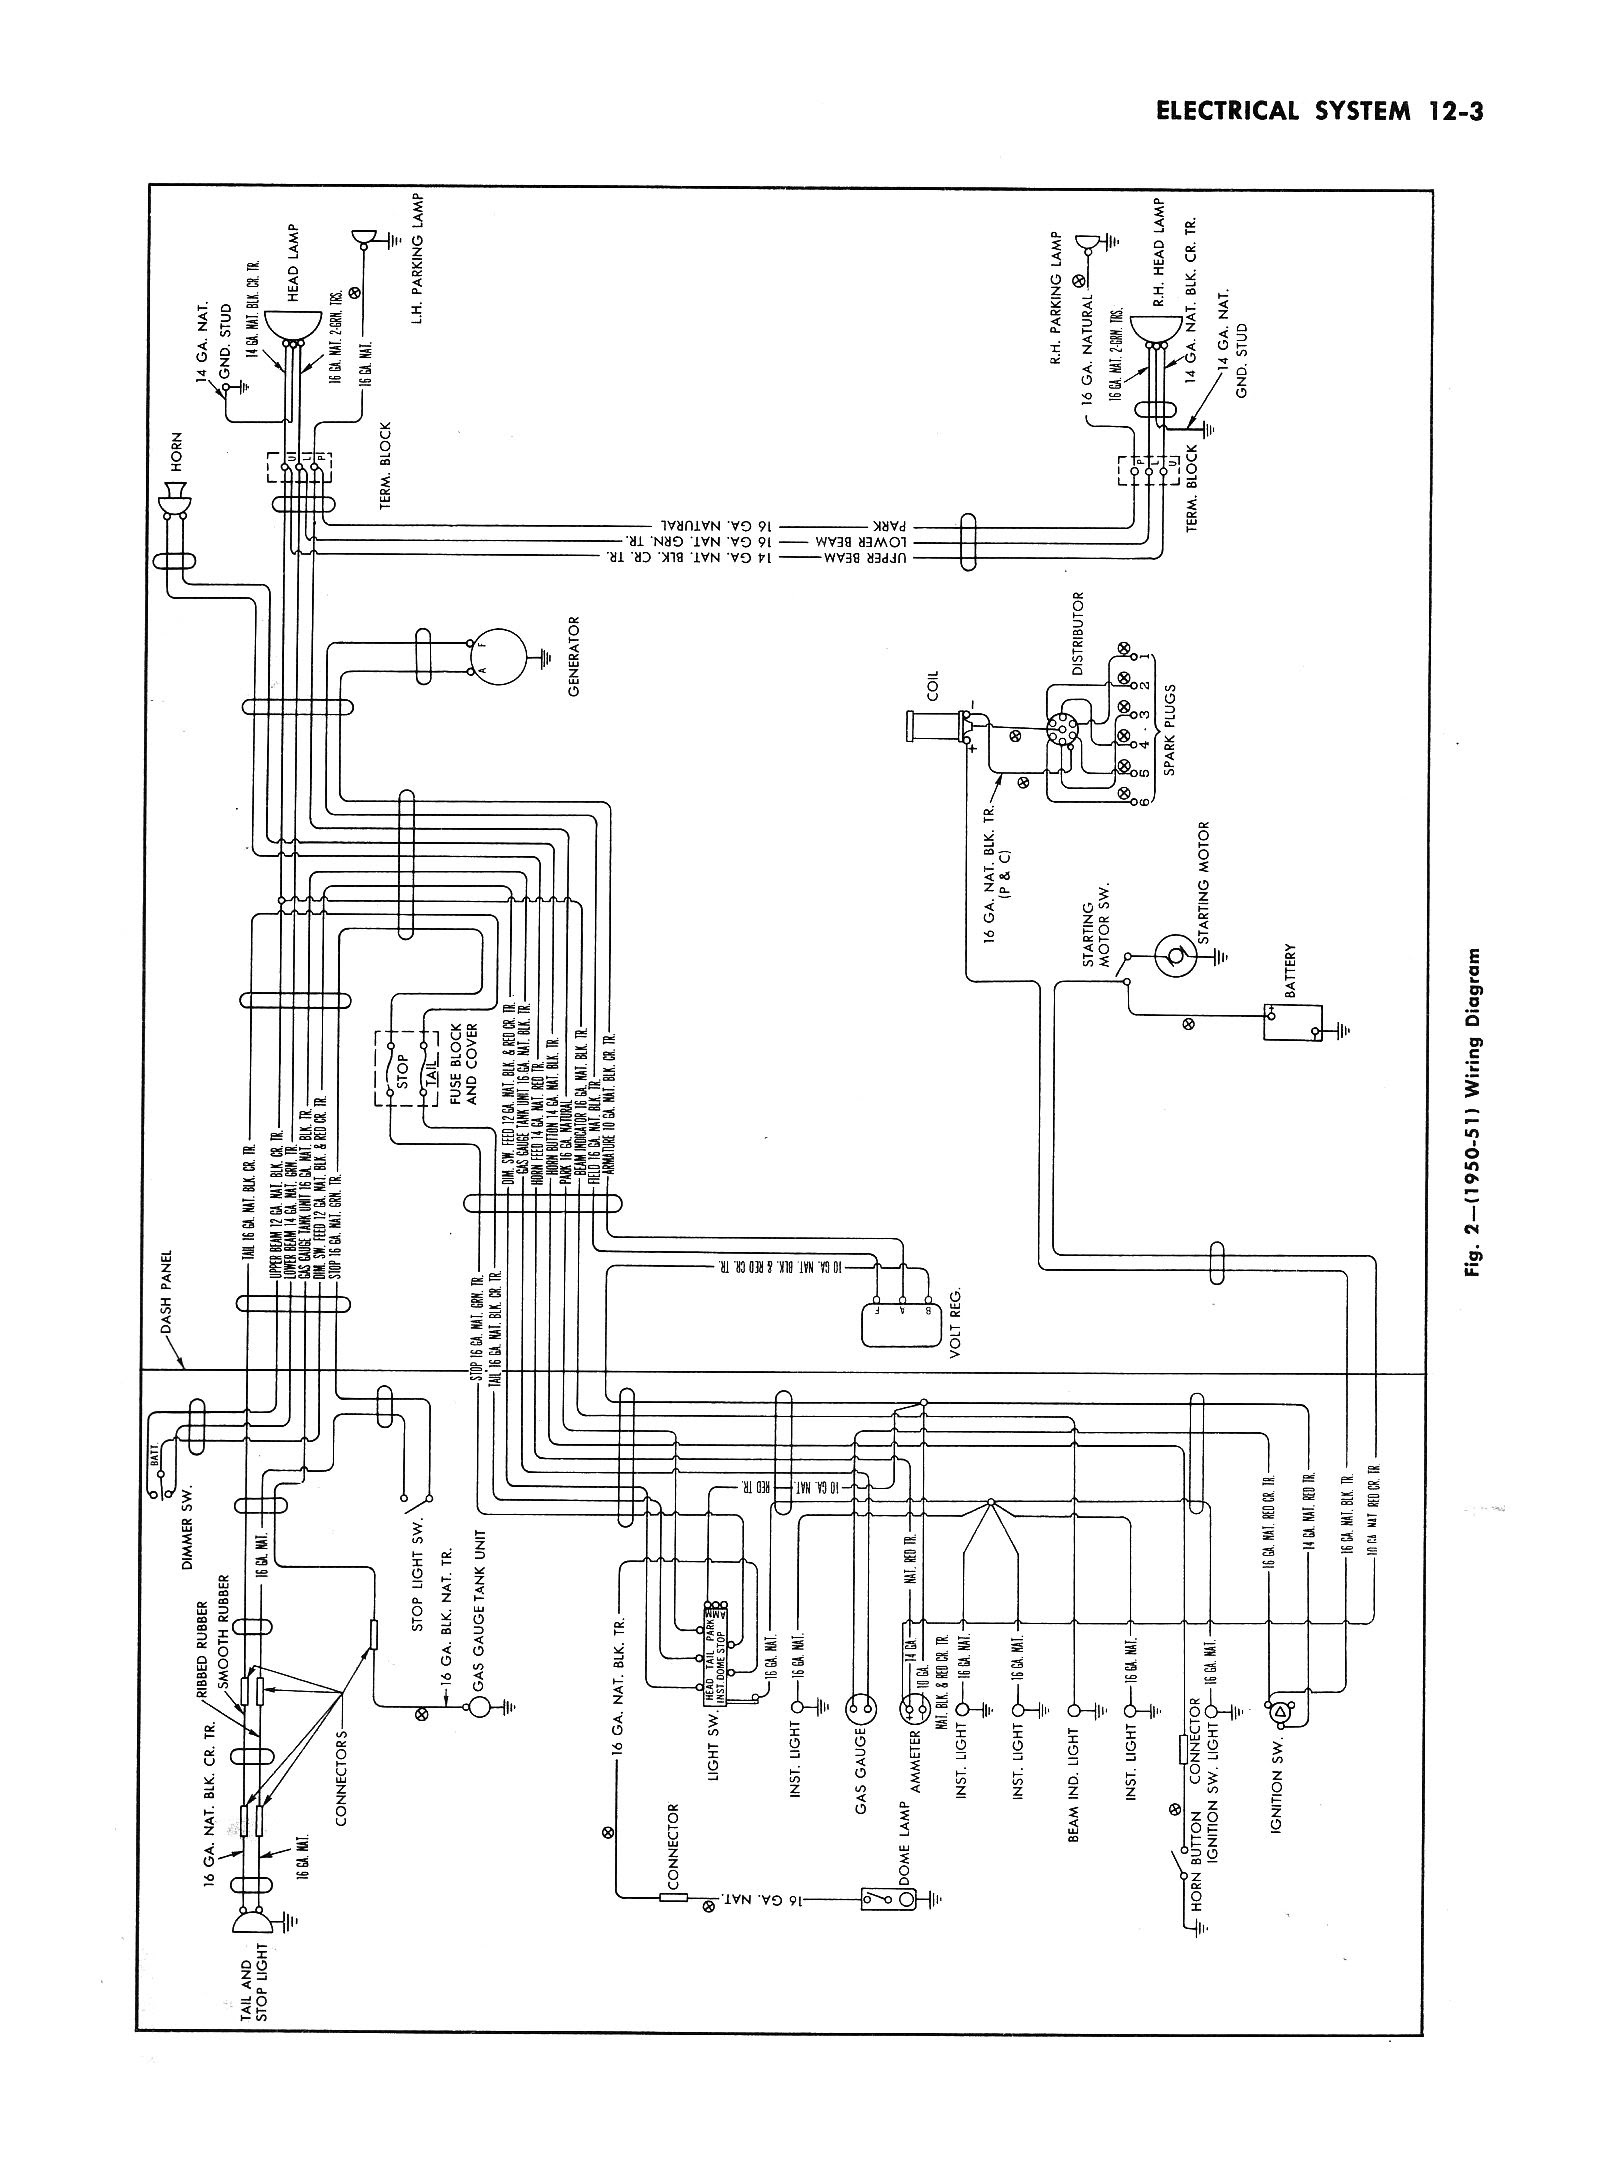 2003 Chevy Alternator Wiring Diagram